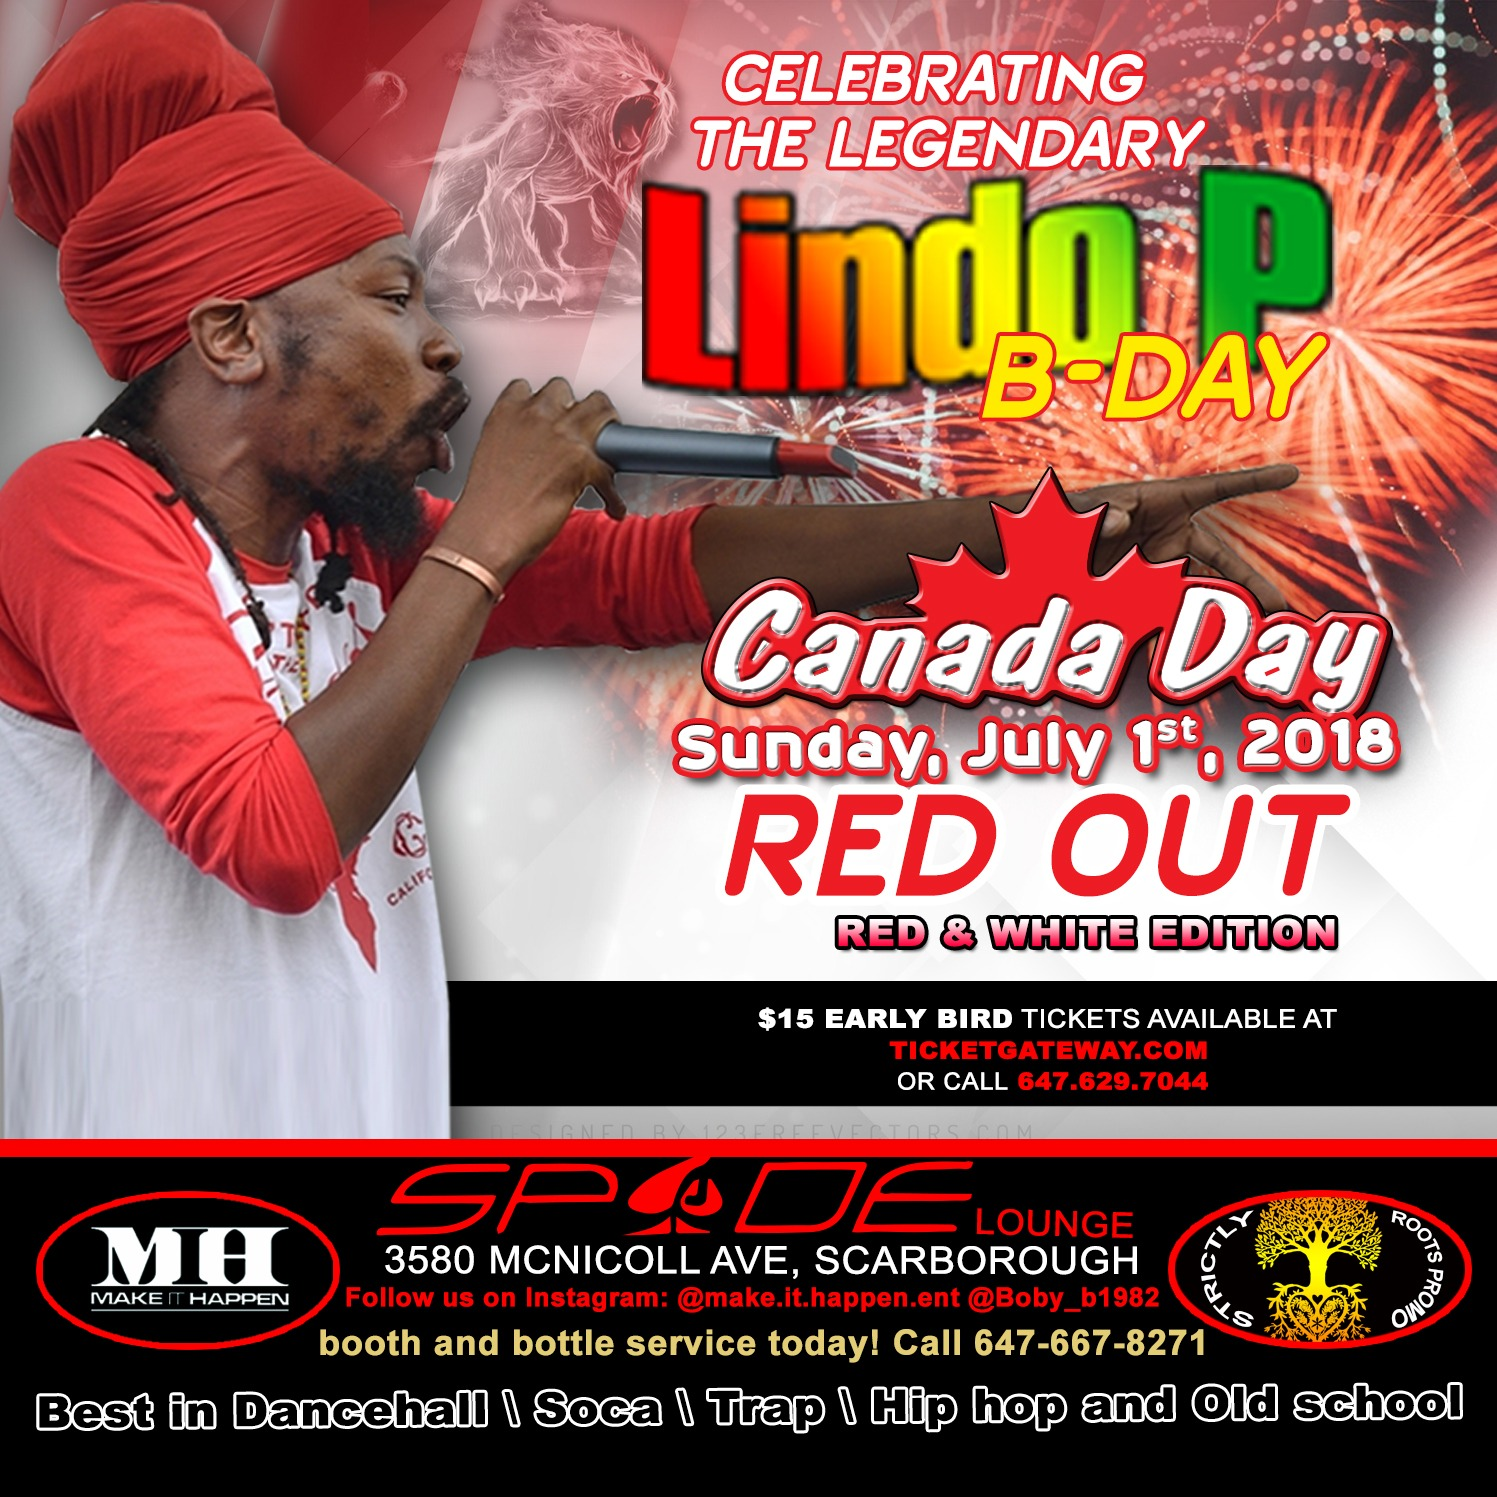 Canada Day | Celebrating the Legendary Lindo P B-Day